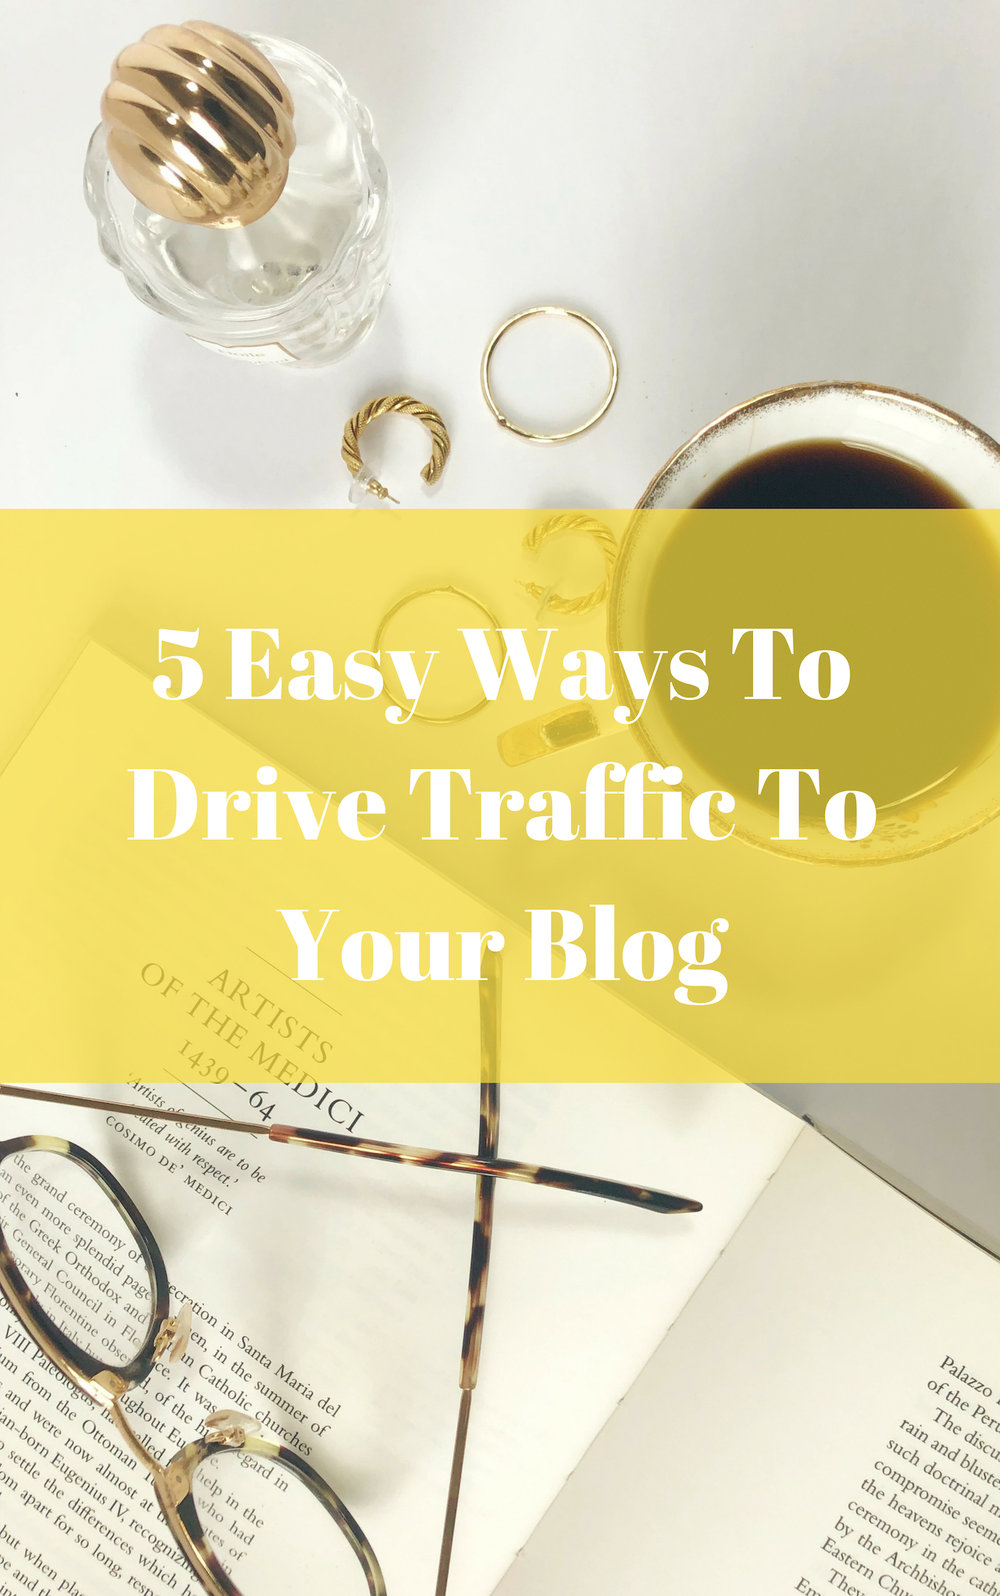 5 easy ways to drive traffic to your blog, how to get more blog views, blogging tips, tips for new bloggers, how to start a blog, get more pageviews